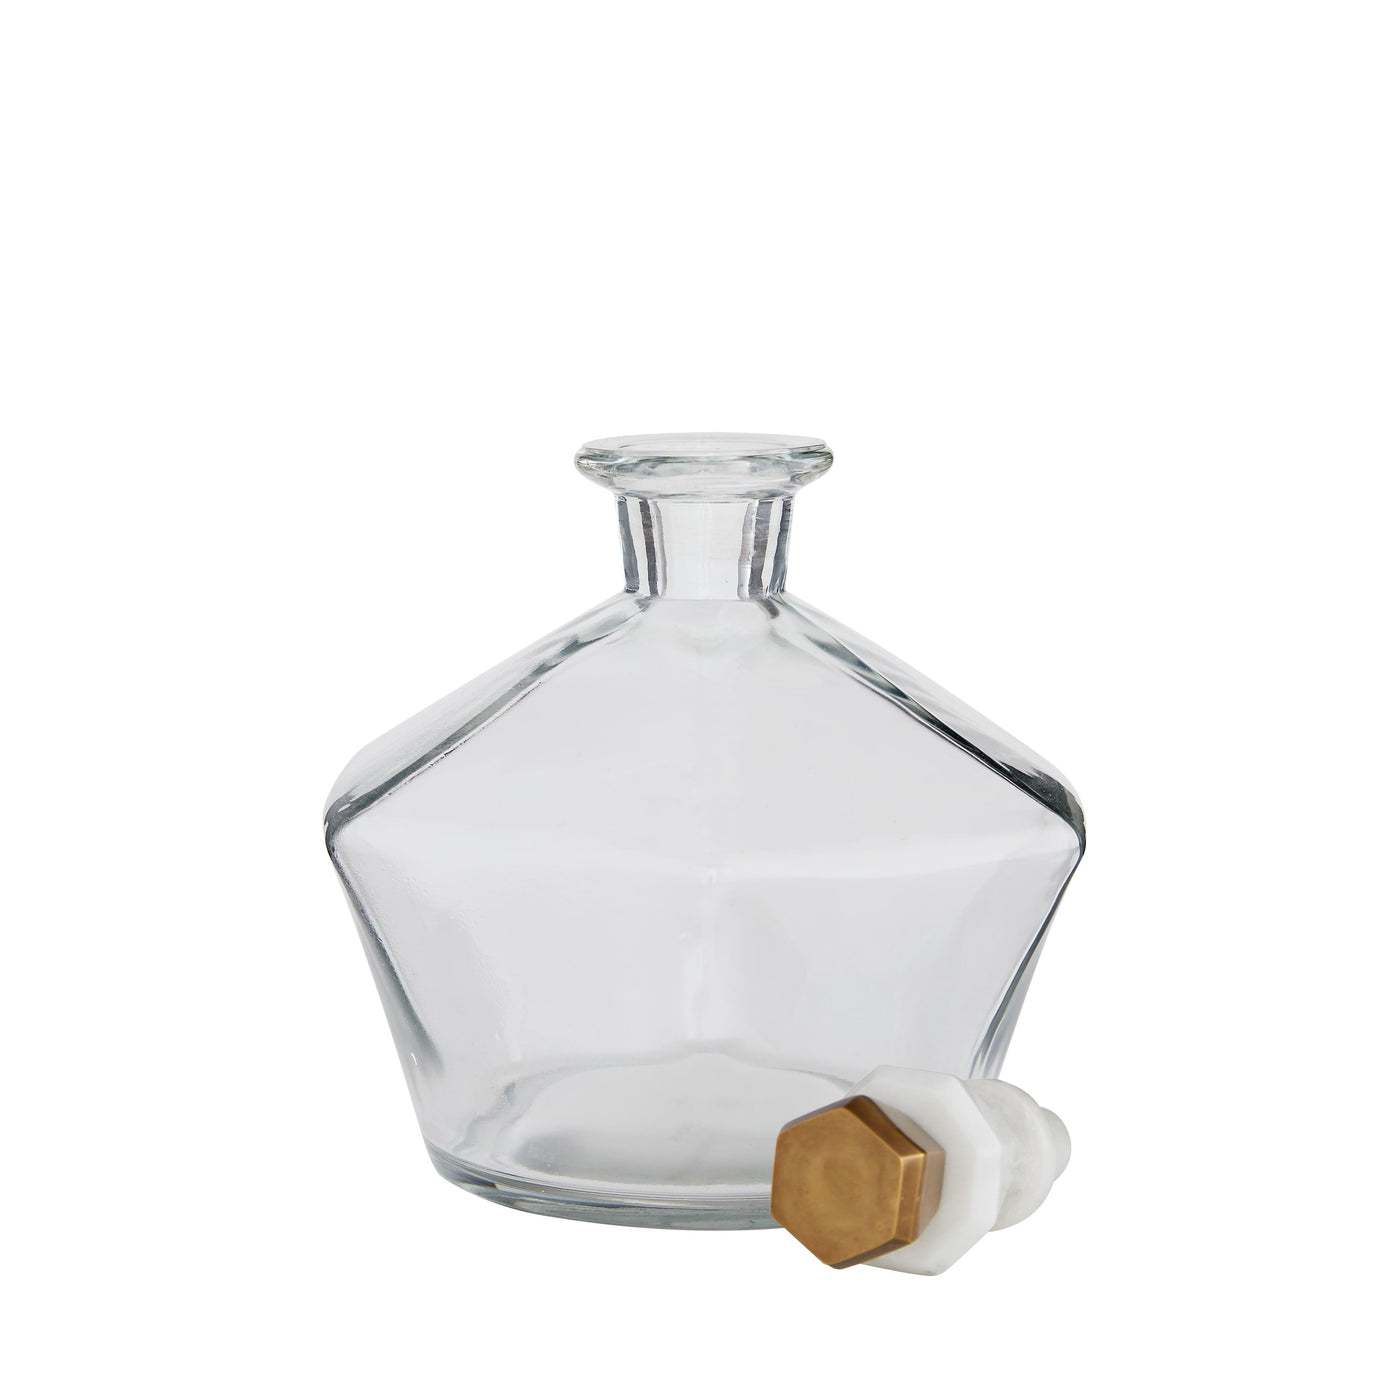 arteriors home Wilshire decanter glass with top